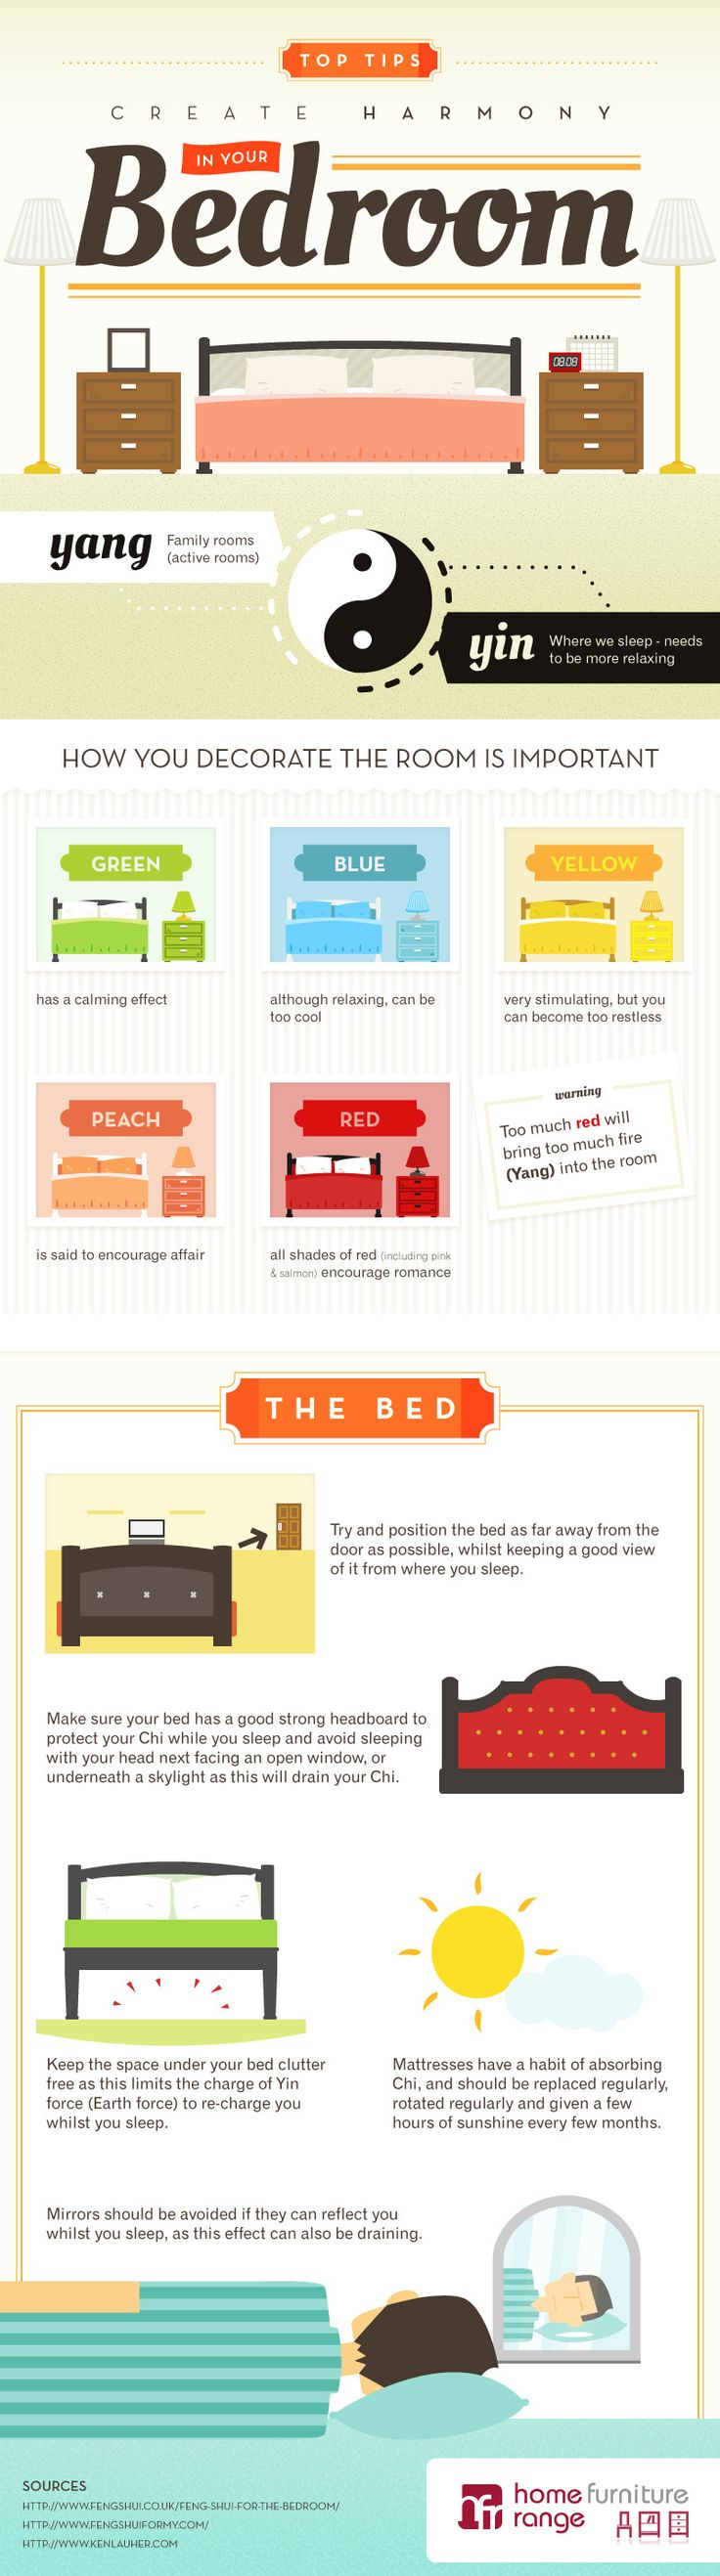 Feng Shui Bedroom Floor Plan 14 best feng shui images on pinterest | home, home ideas and at home